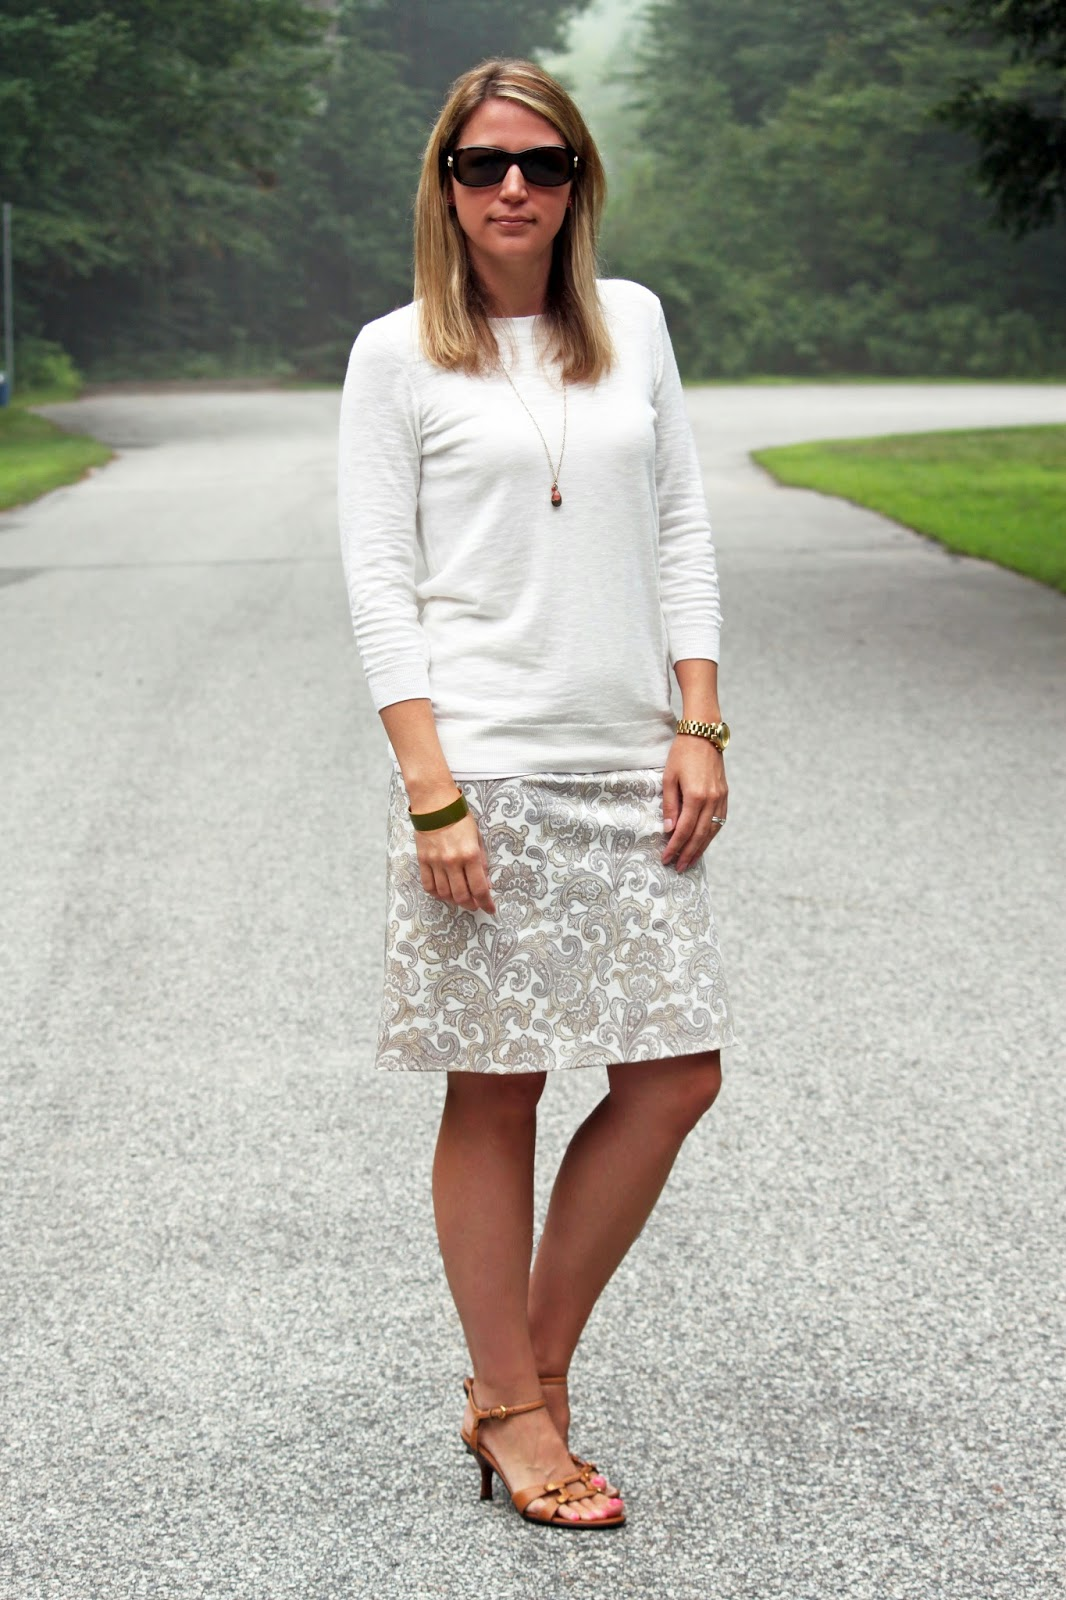 Paisley Pencil Skirt + Neutral Sweater // The Salty Hanger